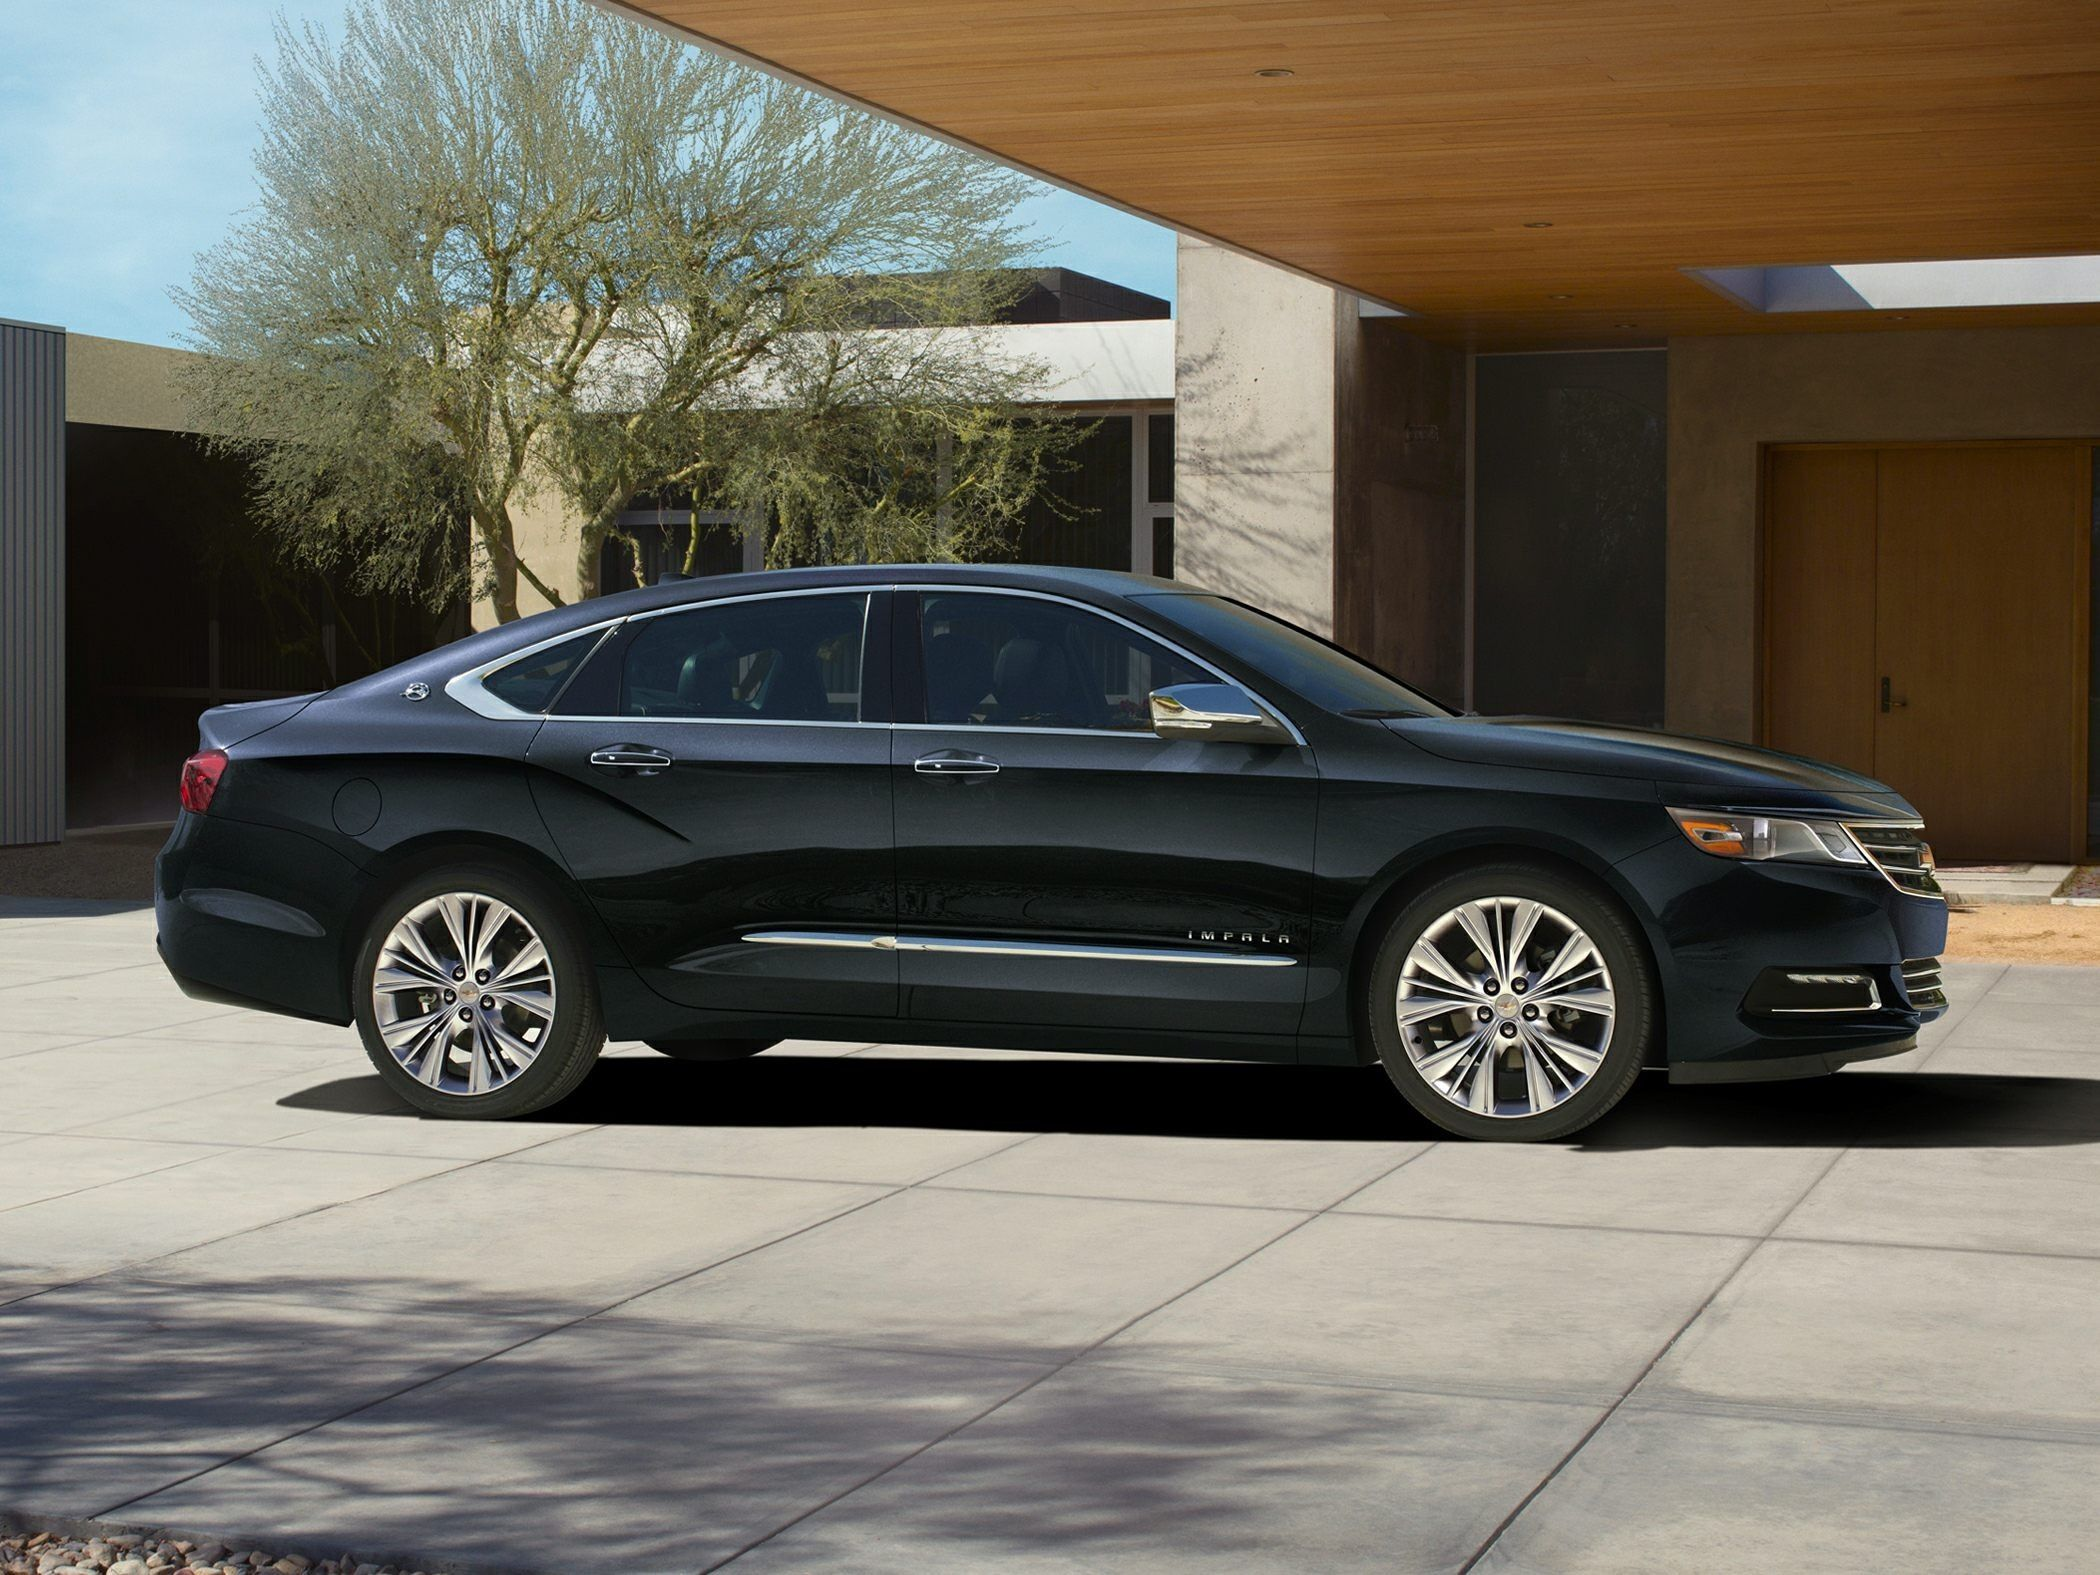 2019 Chevrolet Impala Colors Interior Exterior And Review